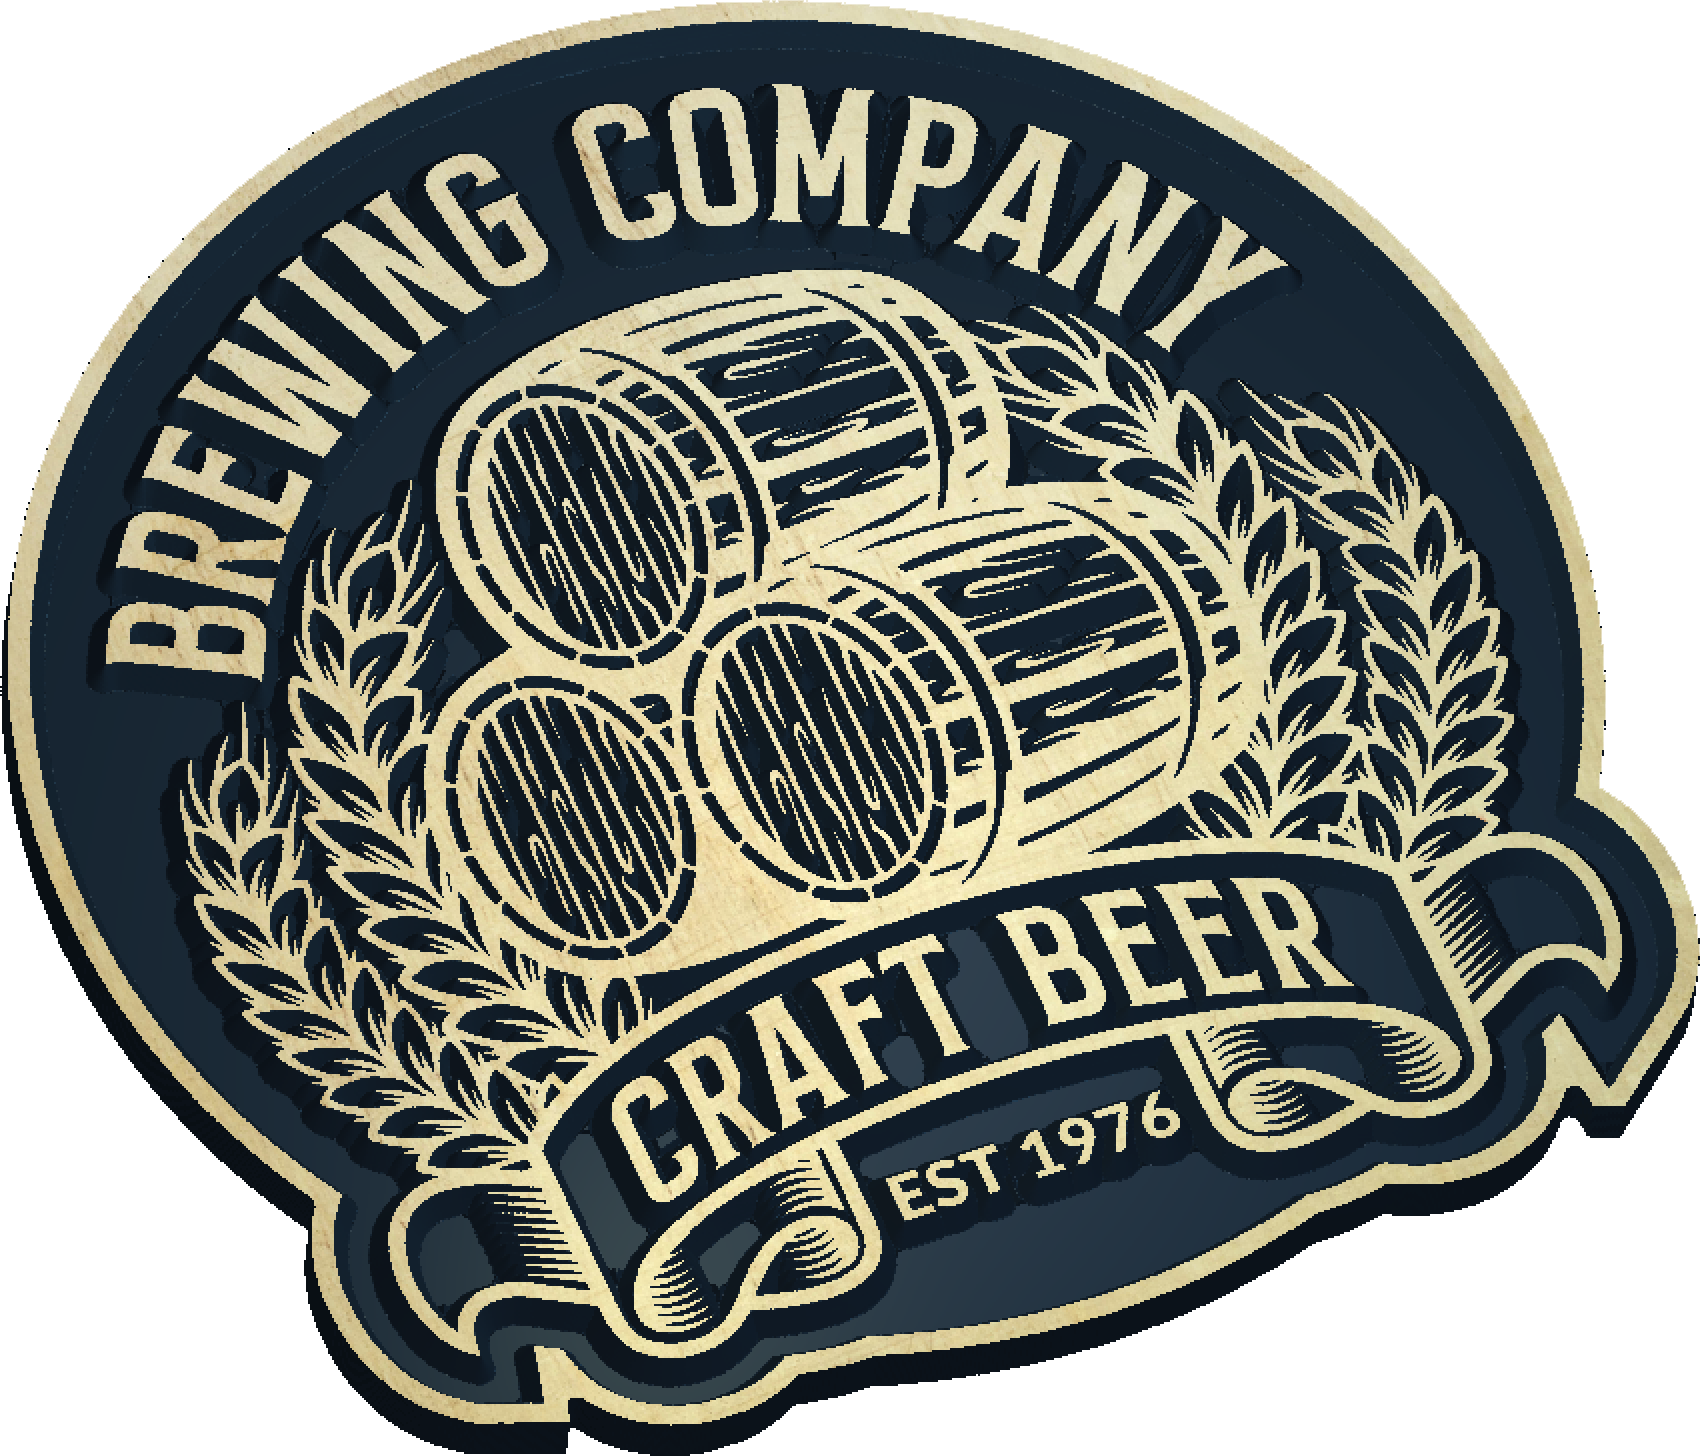 Craft Beer Brewing Company Sign